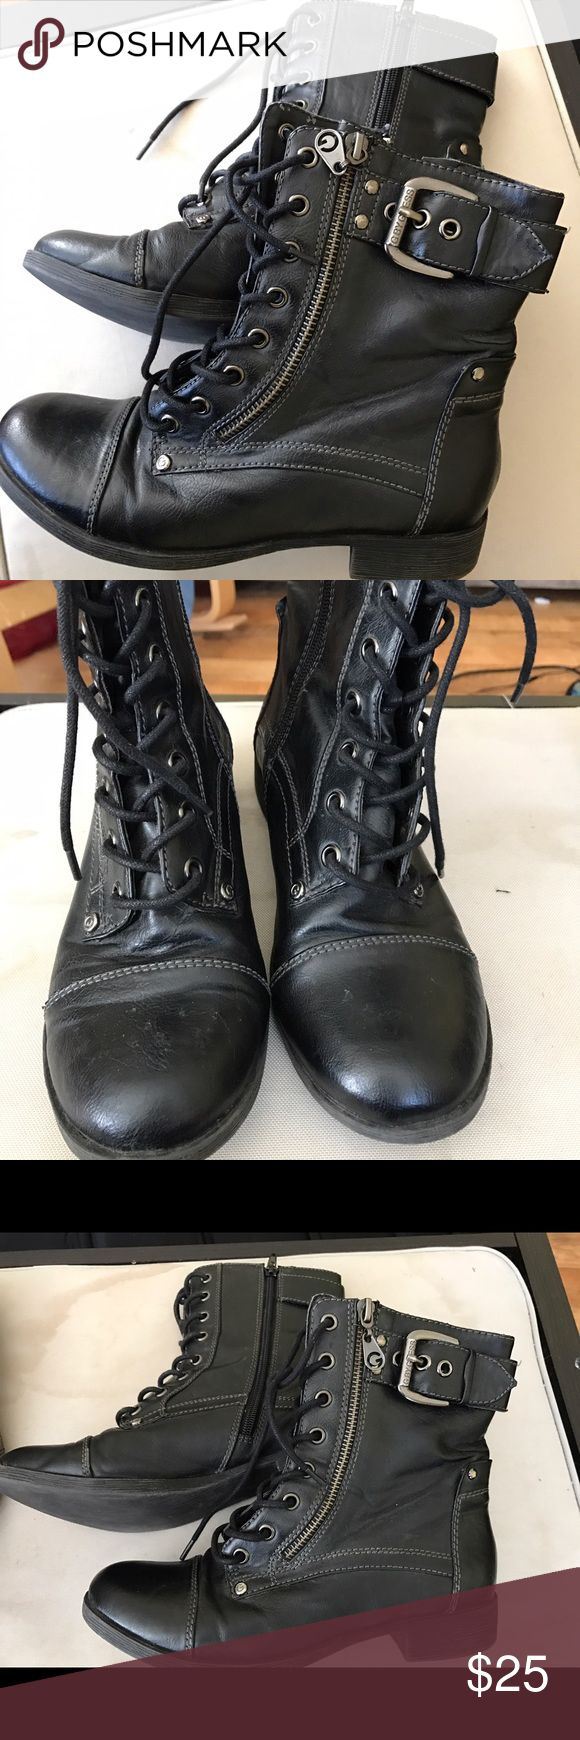 Guess Low Ankle Boots Booties for Women size 6 These boots are in very good used condition. Black, lace up booties. Guess Shoes Ankle Boots & Booties